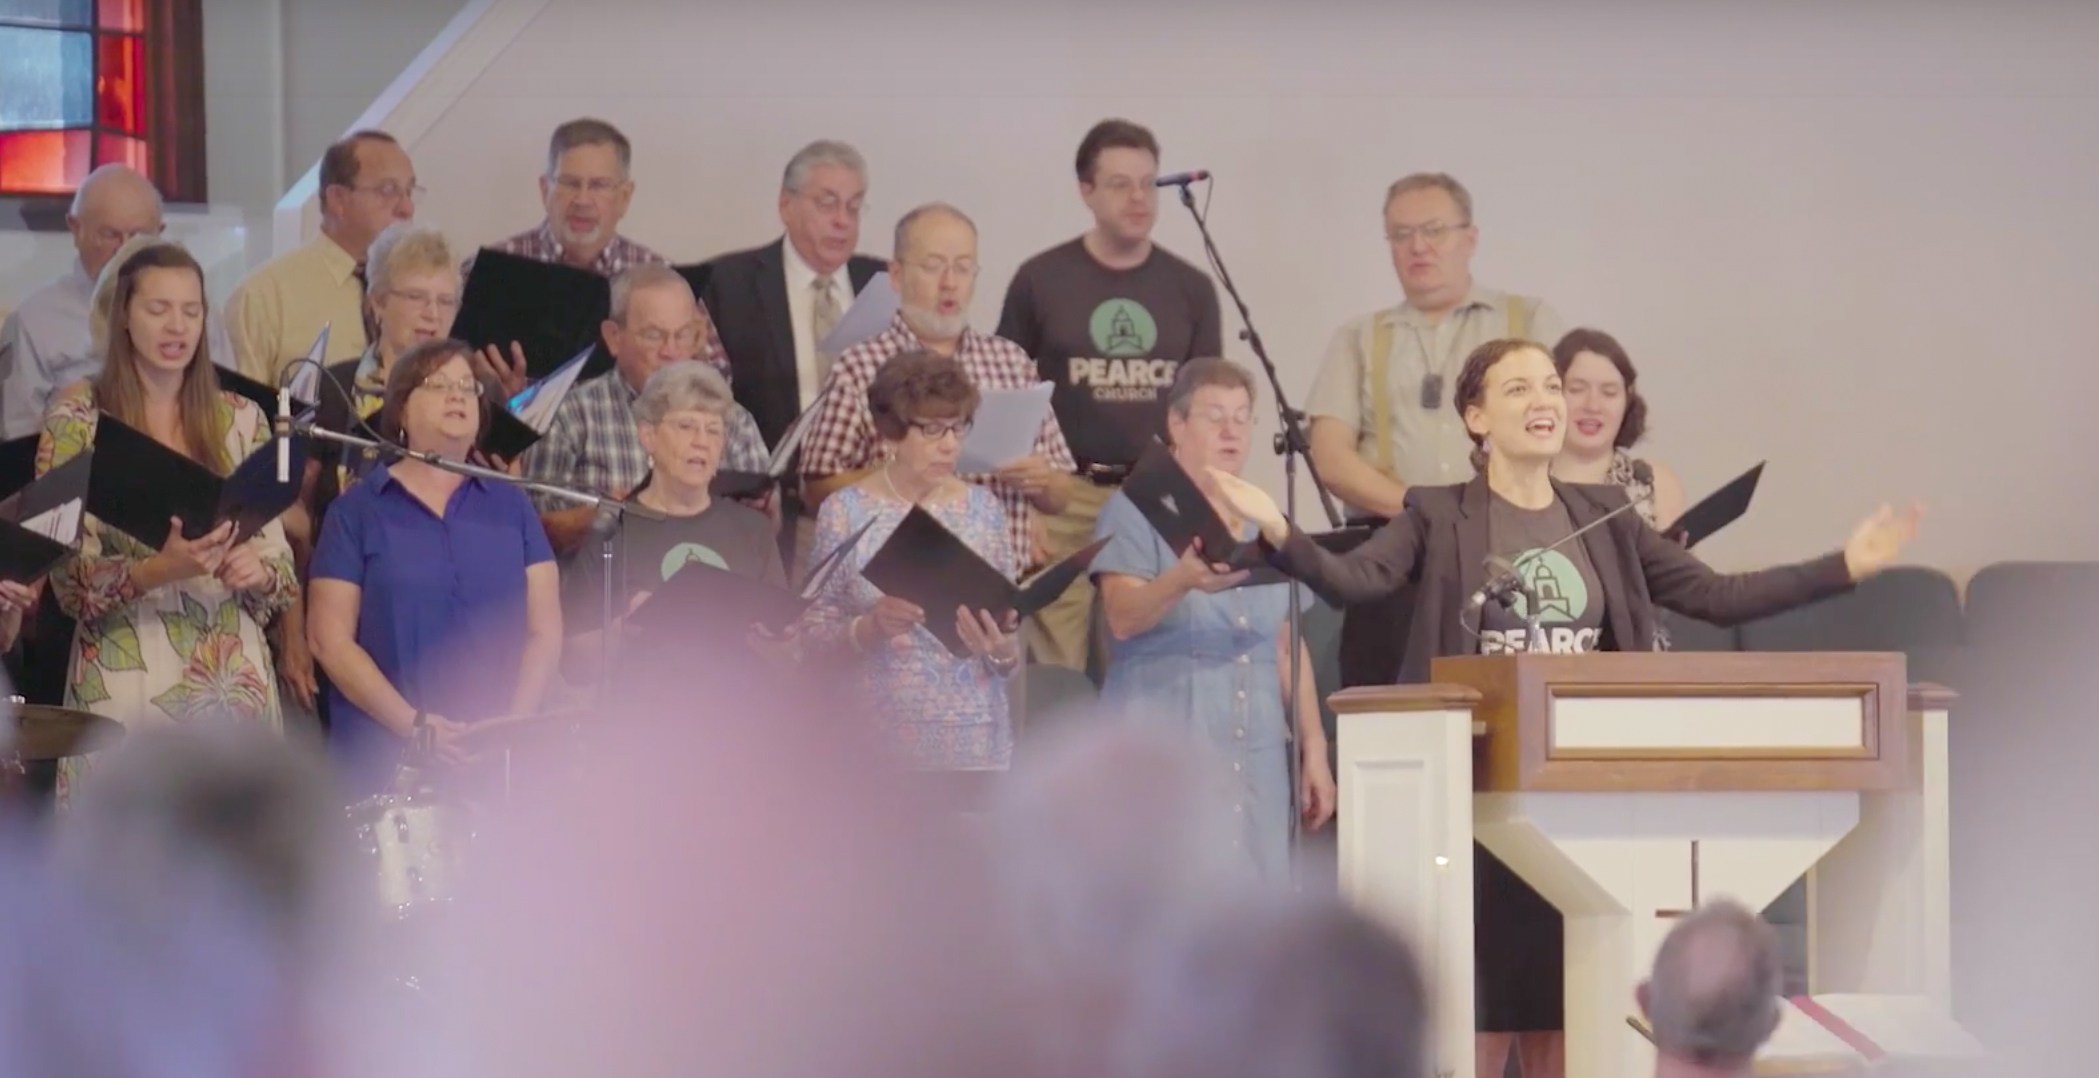 Choir singing at the traditional service at Pearce Church in Rochester, NY